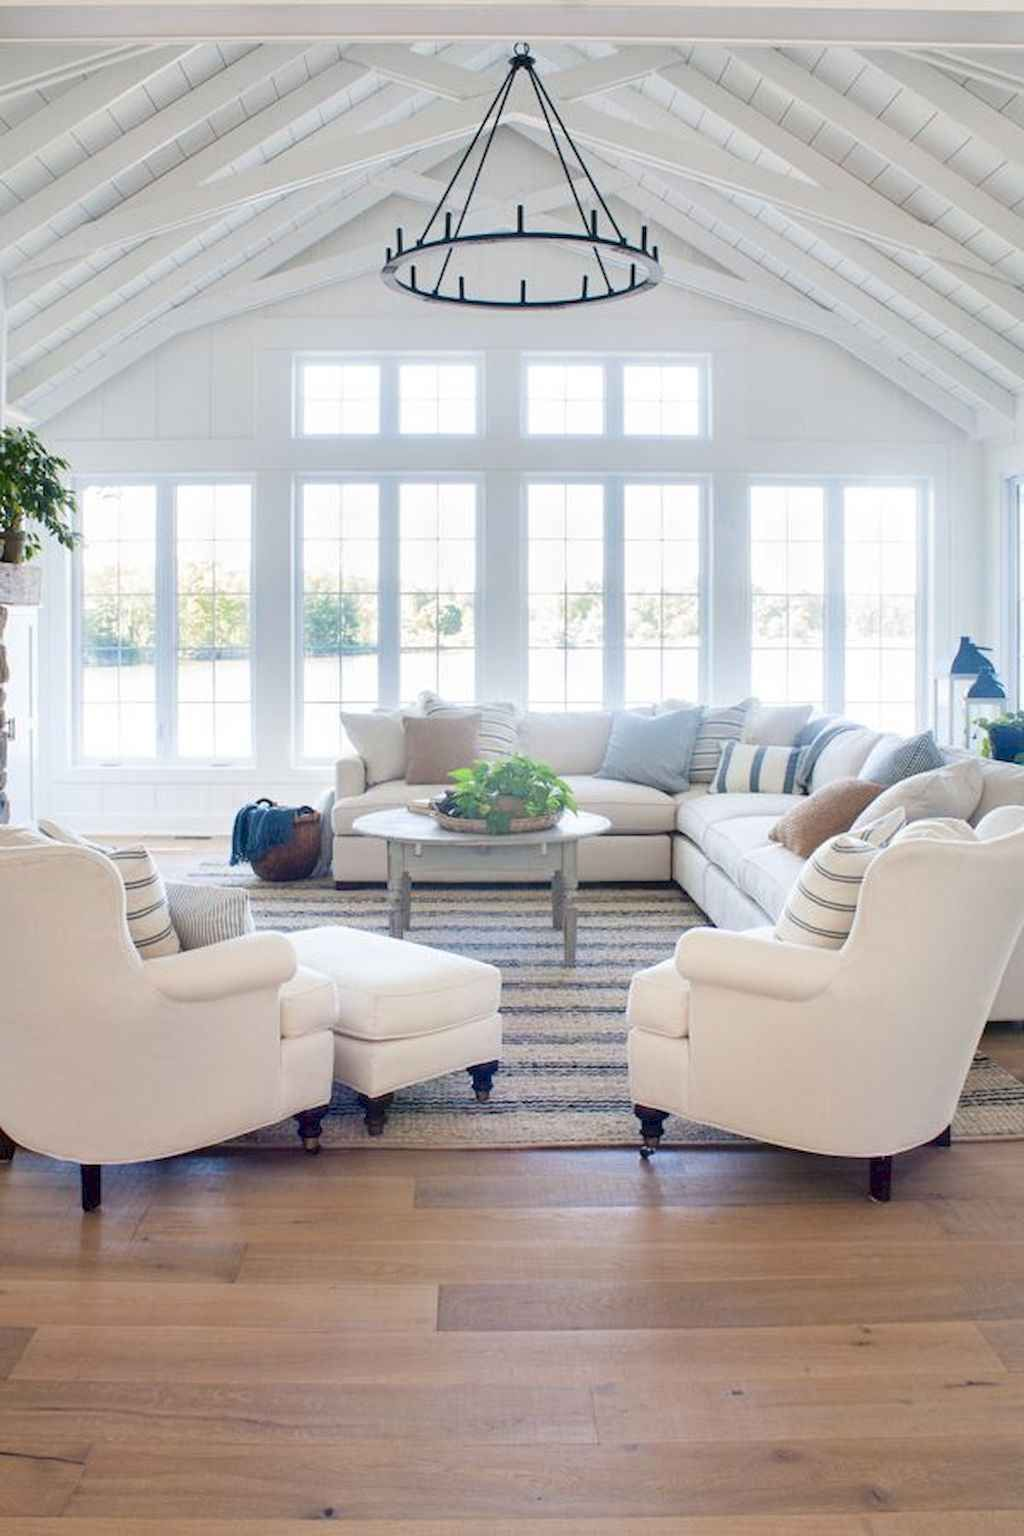 Wonderful coastal living room design & decor ideas (30 #coastallivingrooms